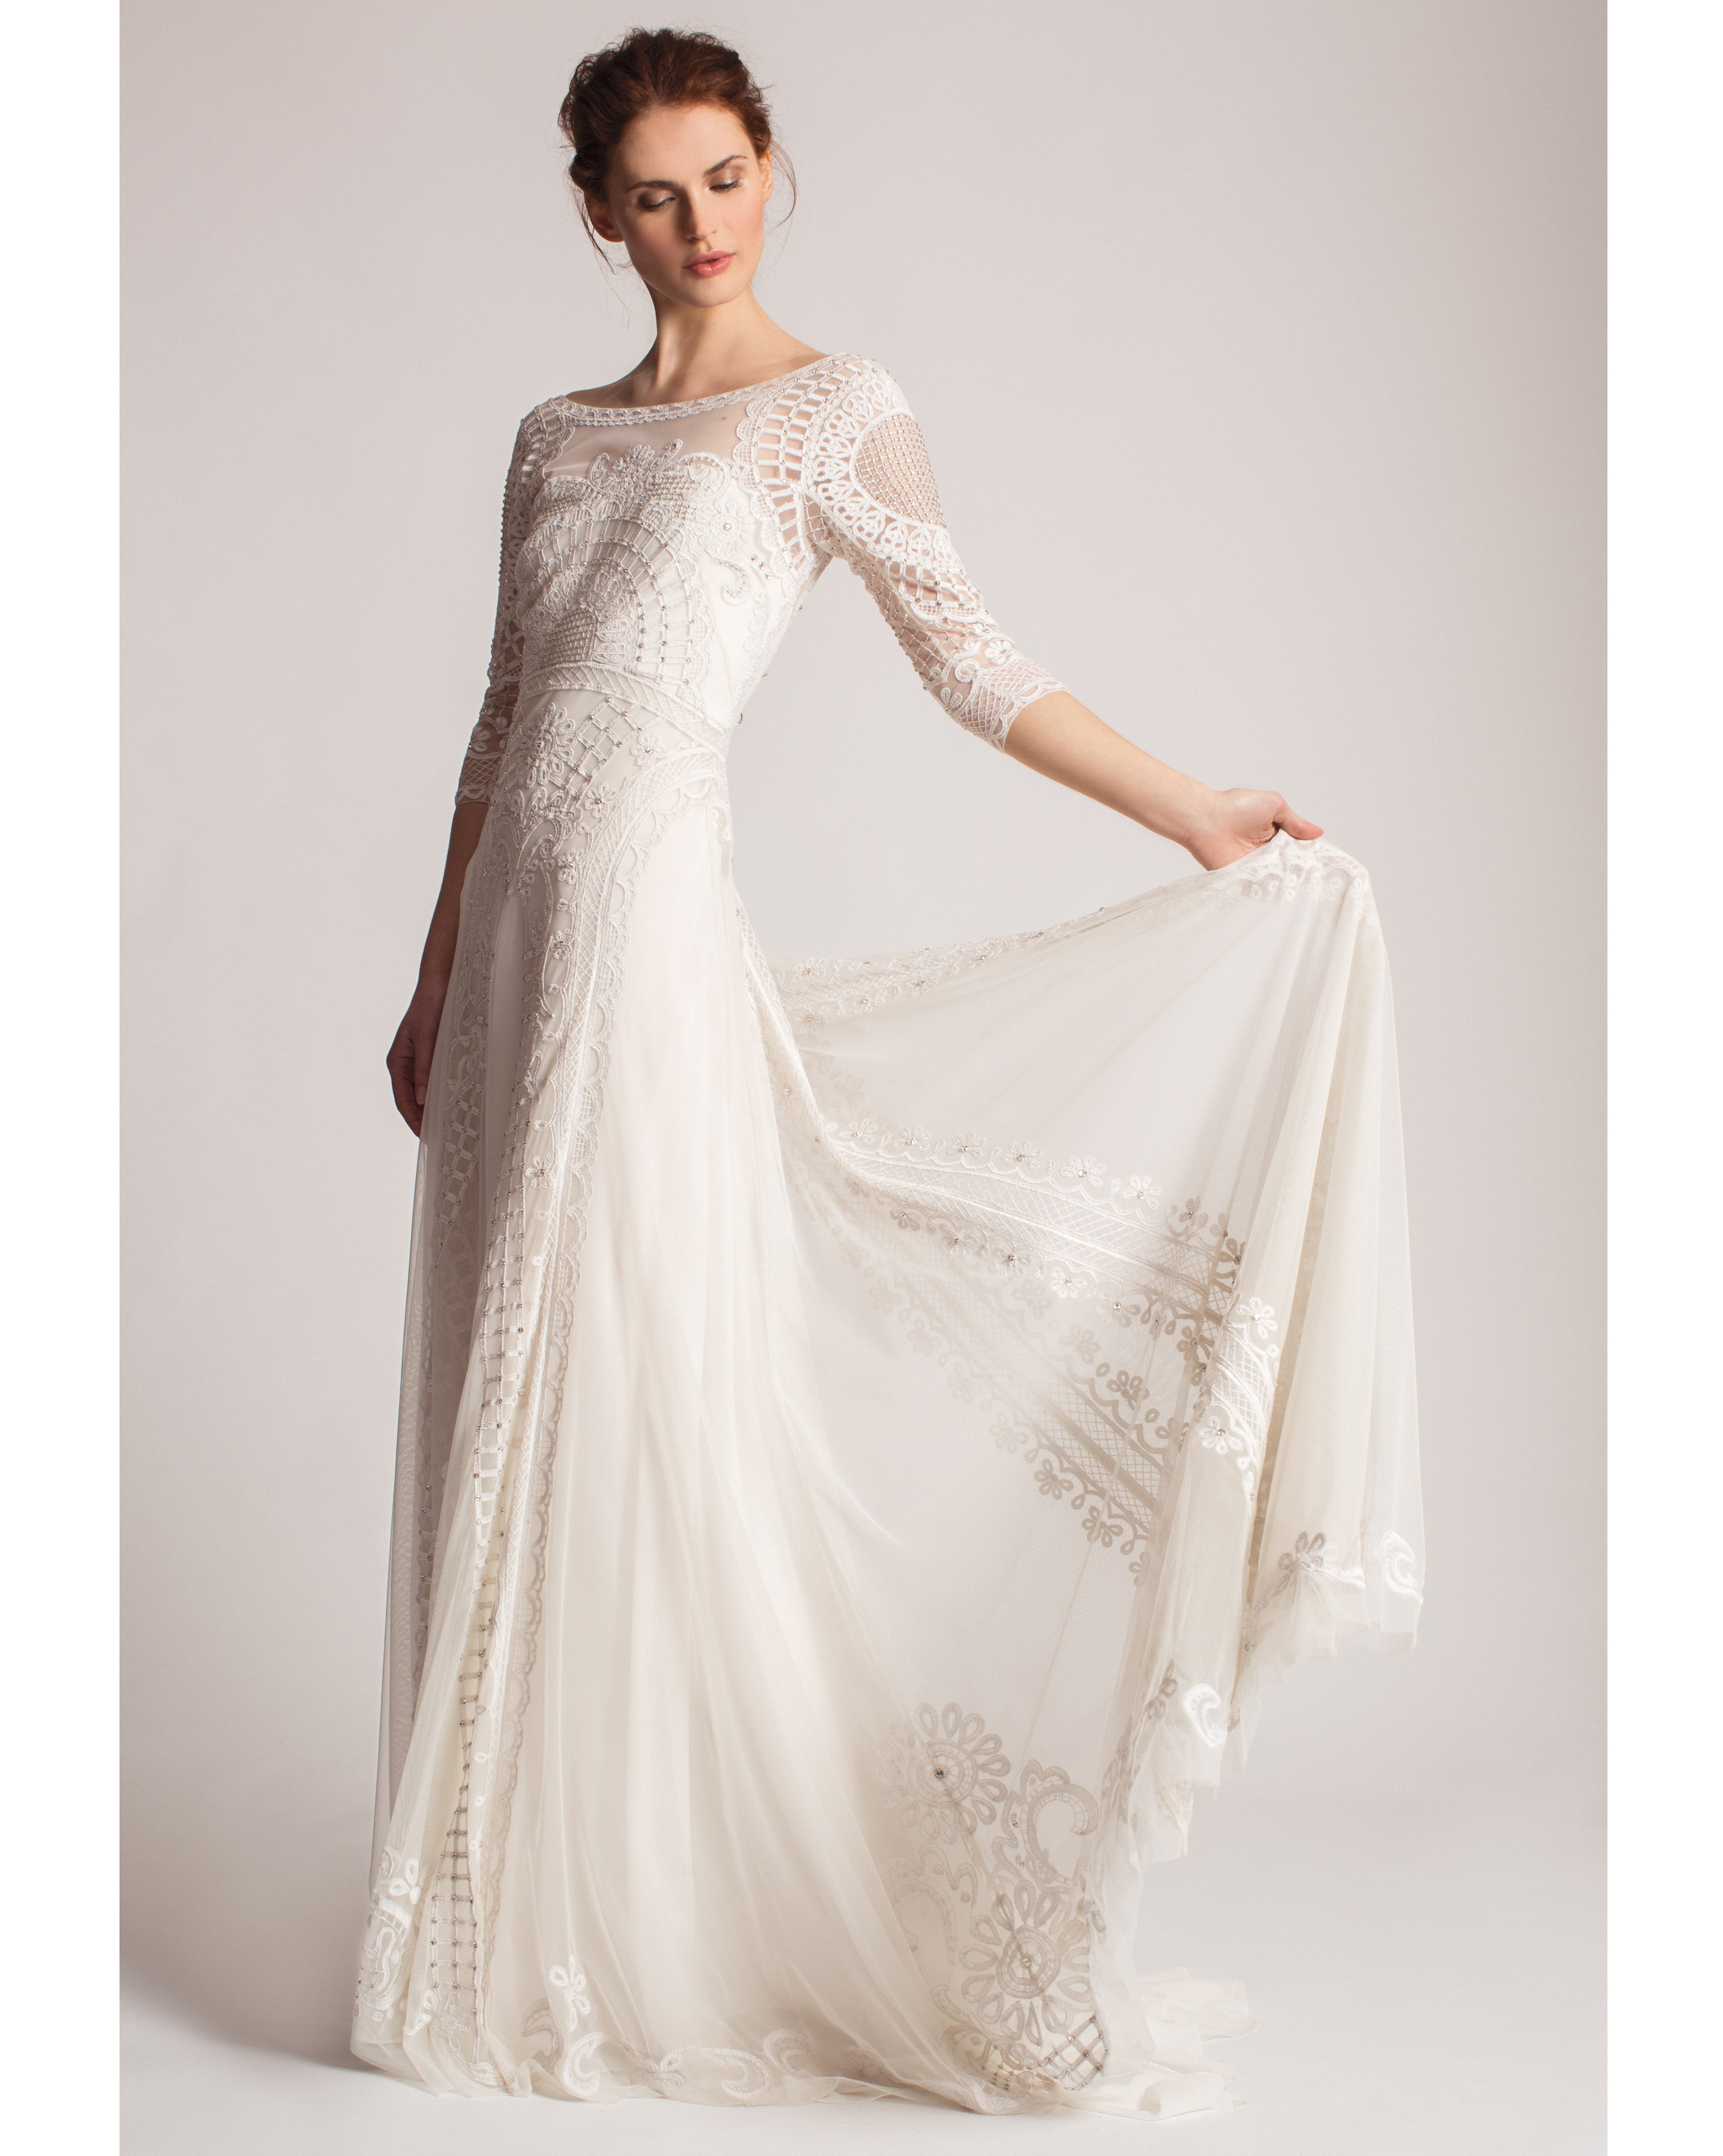 Serious Romantic: Temperley Bridal Dress